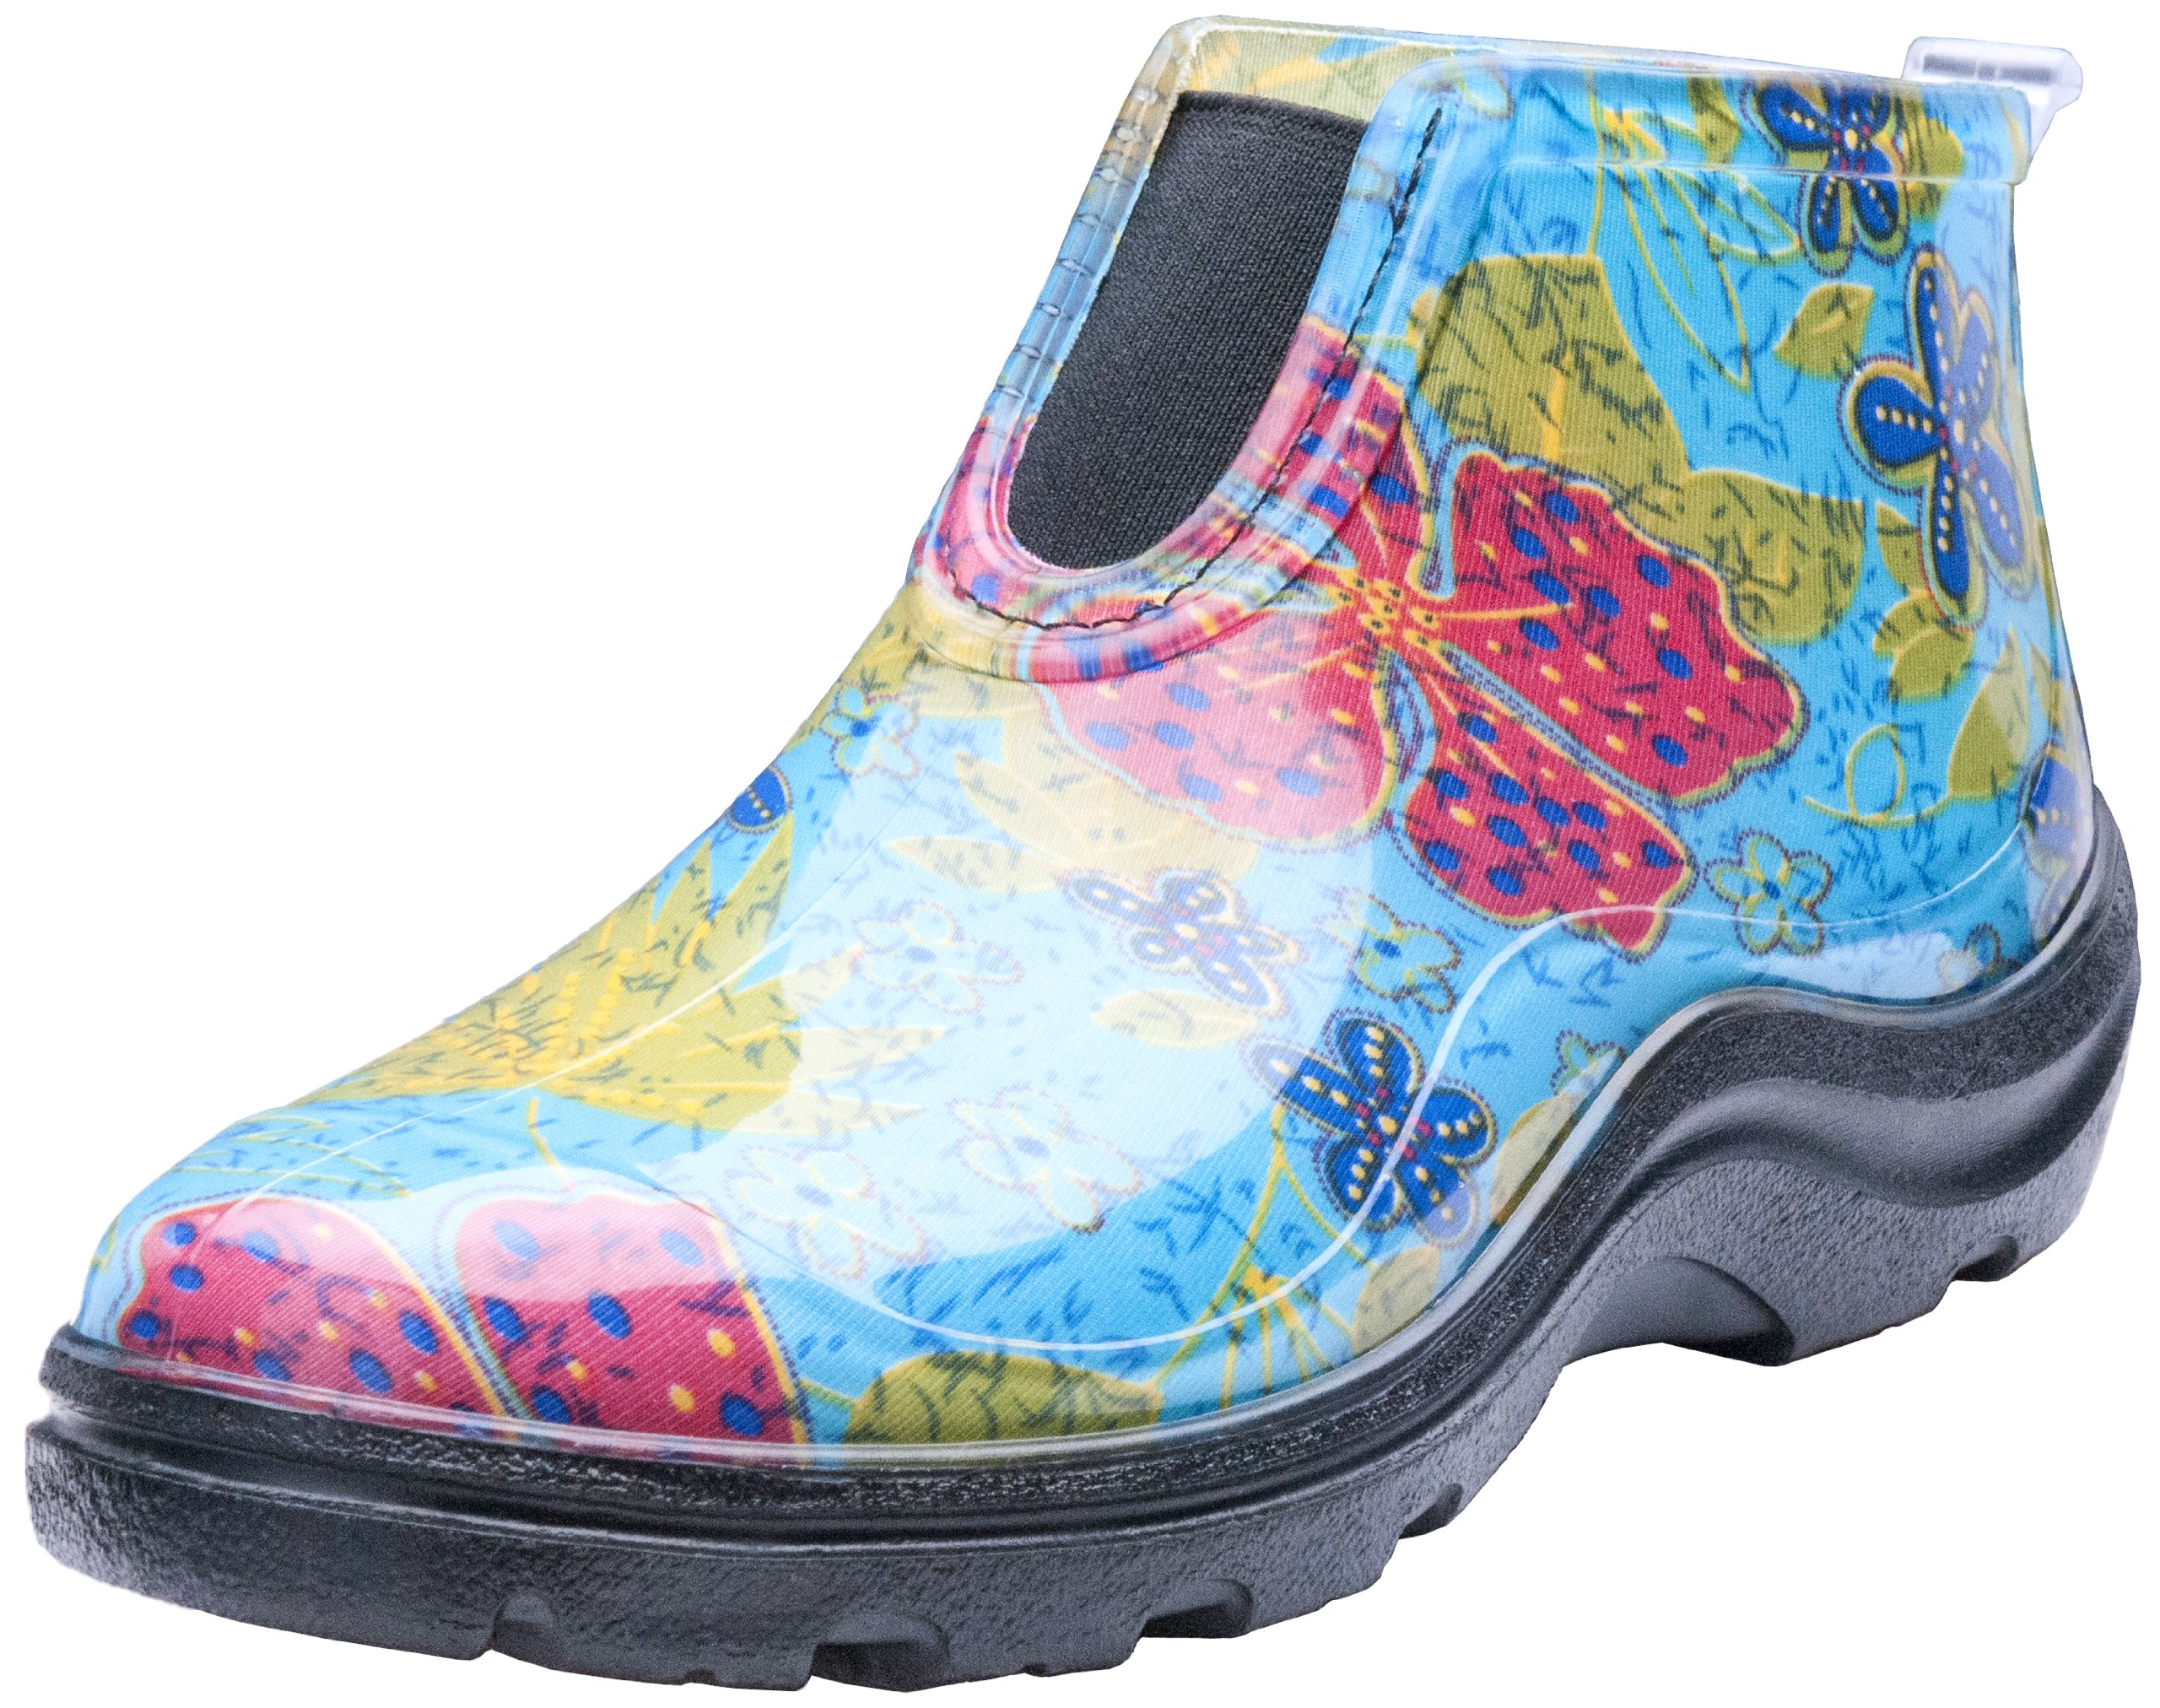 Sloggers  Women's Waterproof Rain and Garden Ankle Boots with Comfort Insole,  Midsummer Blue, Size 10, Style 2841BL10